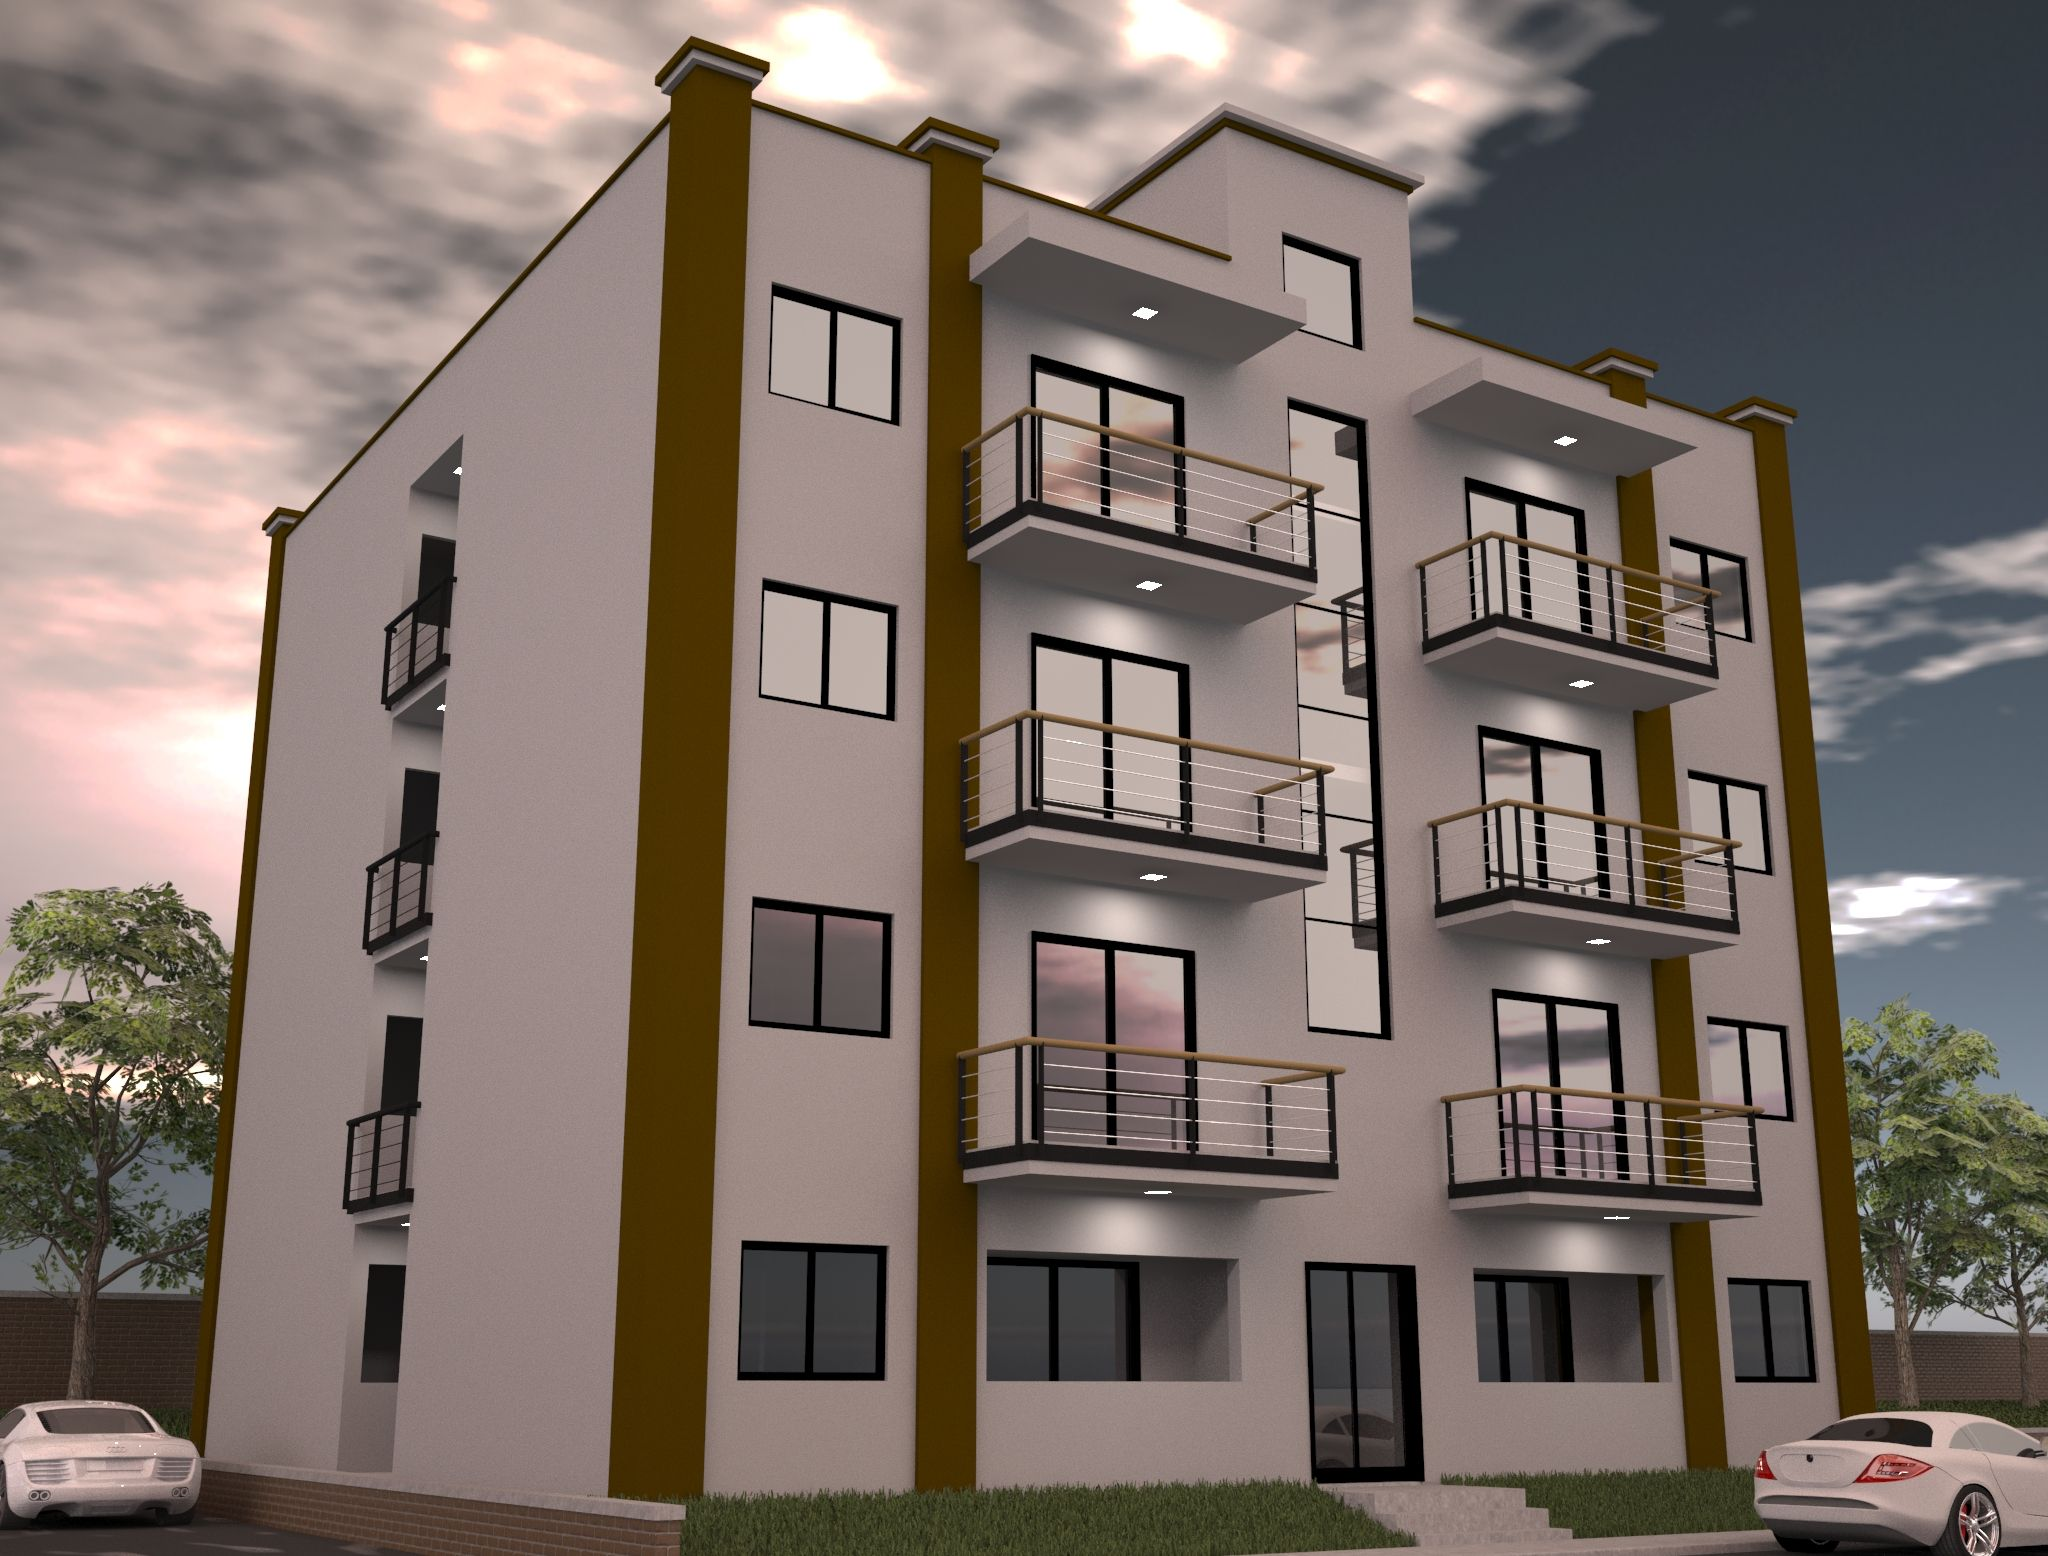 Small Apartment Building Designs modern style small apartment design apartment House Apartment Exterior Design Ideas Waplag Building_exterior Design